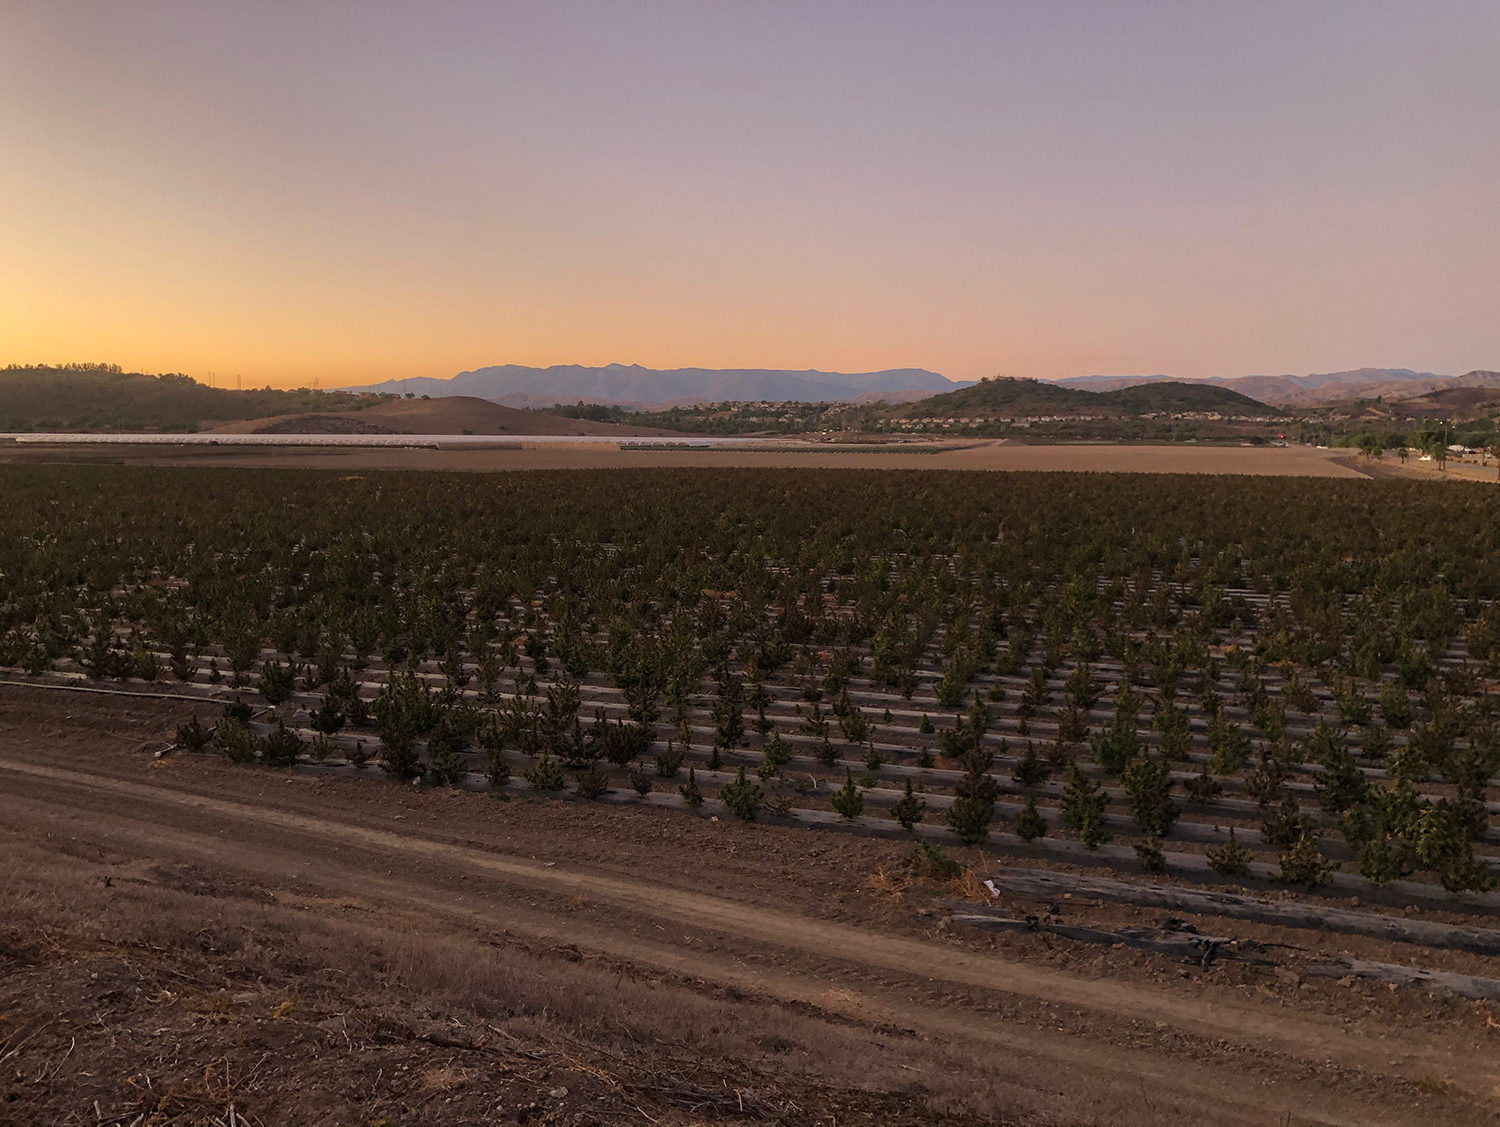 Camarillo farms have started to grow industrial hemp in the berry offseason, which can help to improve soil quality and has numerous uses.